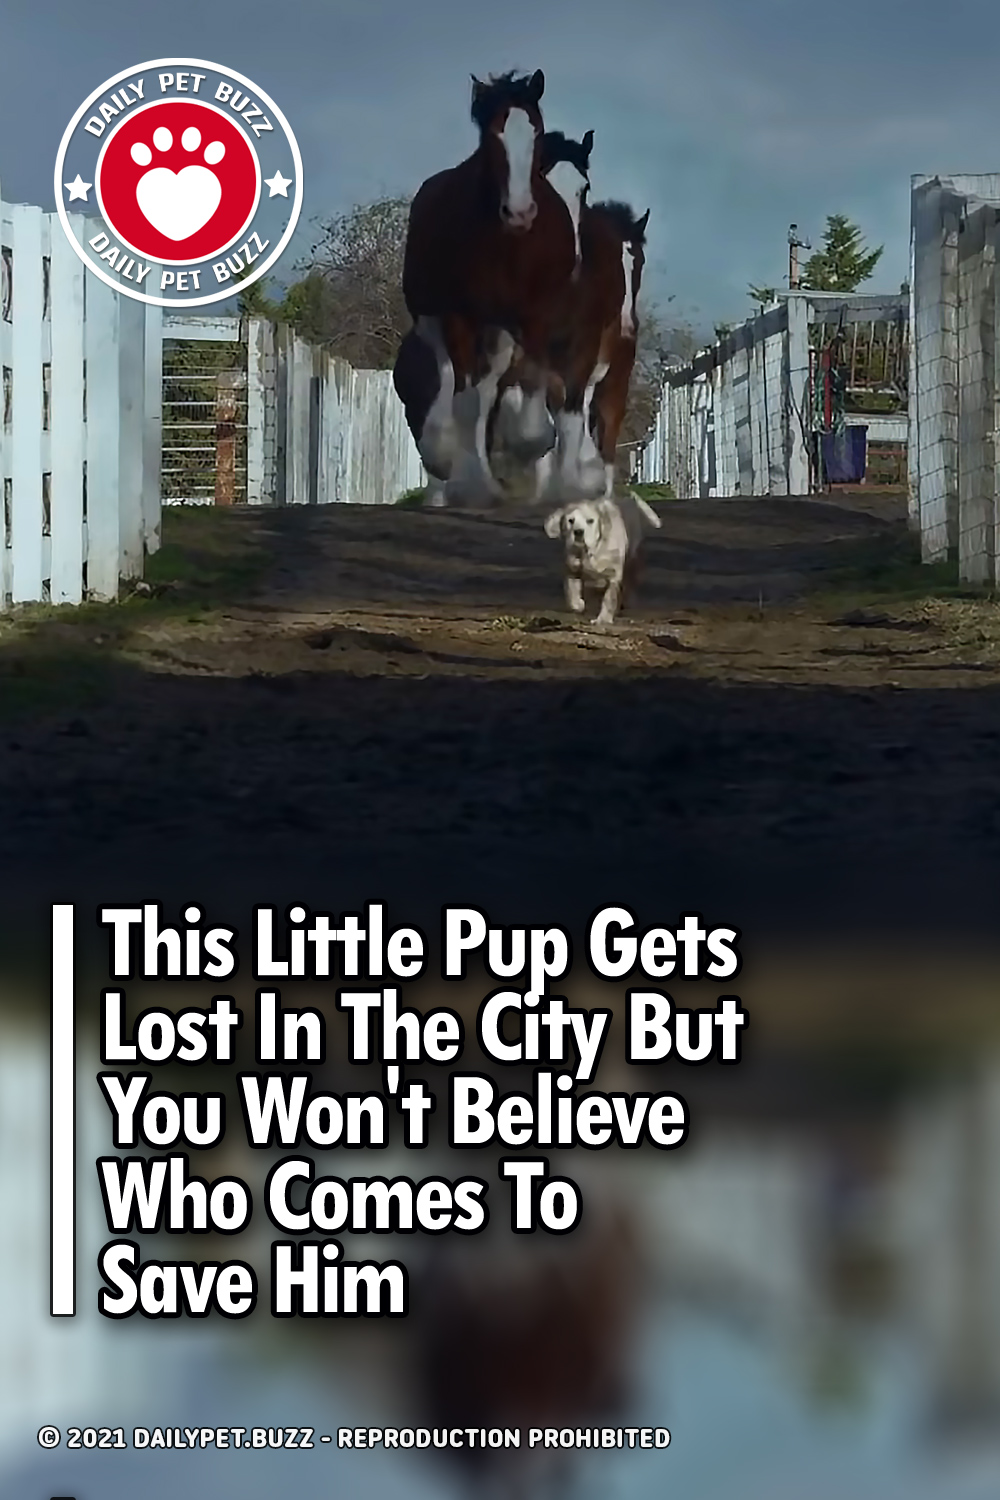 This Little Pup Gets Lost In The City But You Won\'t Believe Who Comes To Save Him